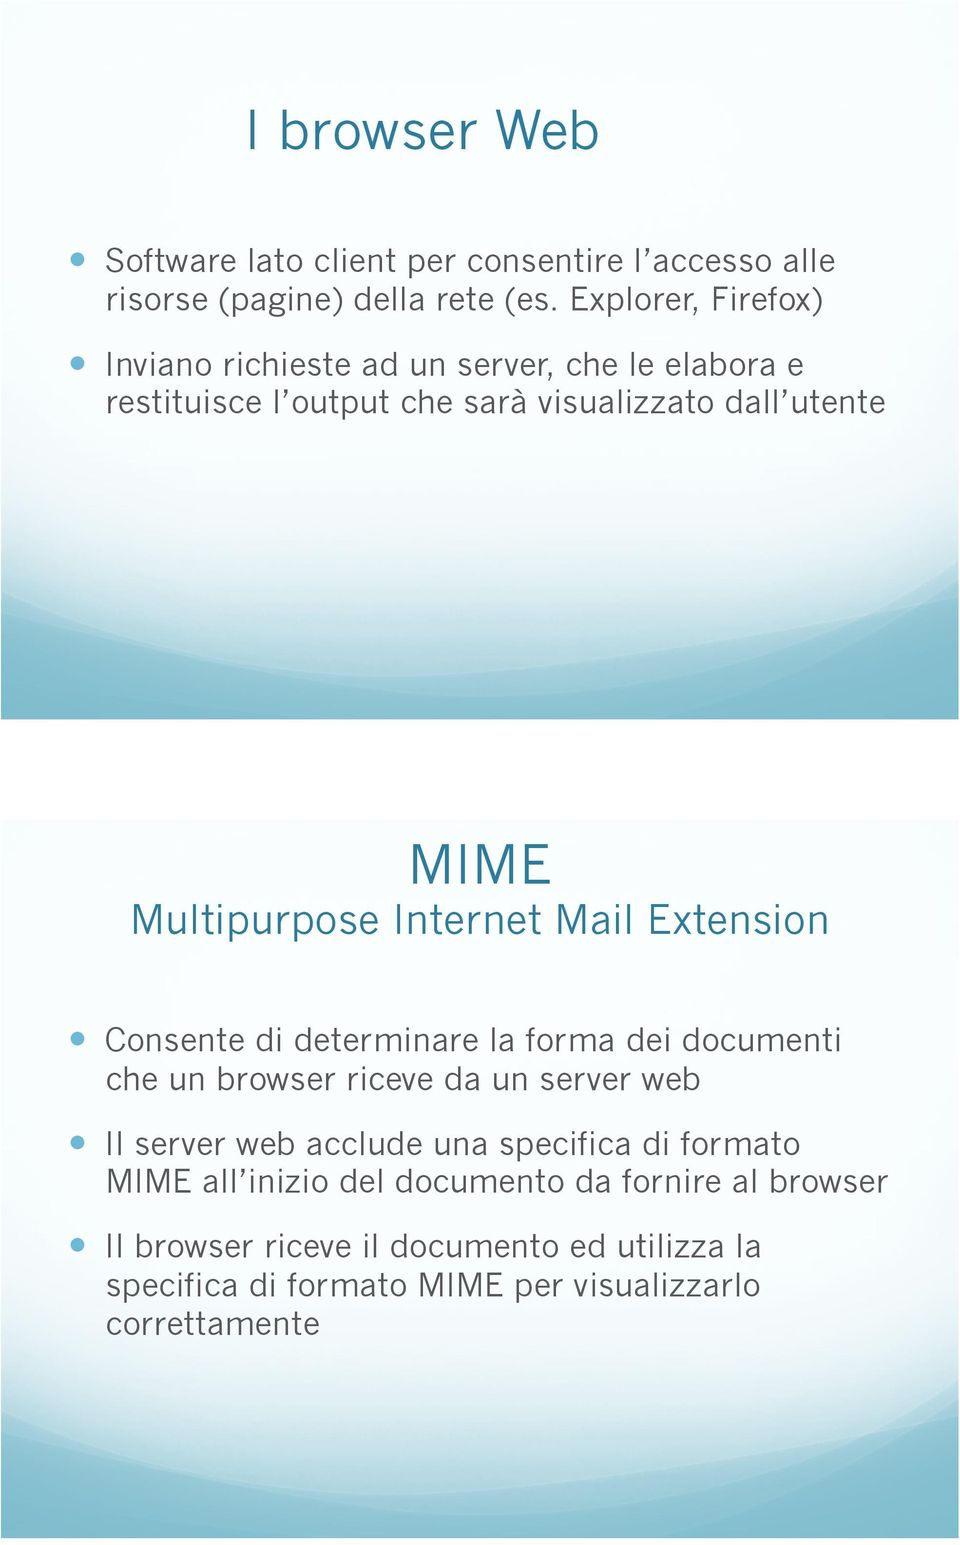 Extension! Consente di determinare la forma dei documenti che un browser riceve da un server web!